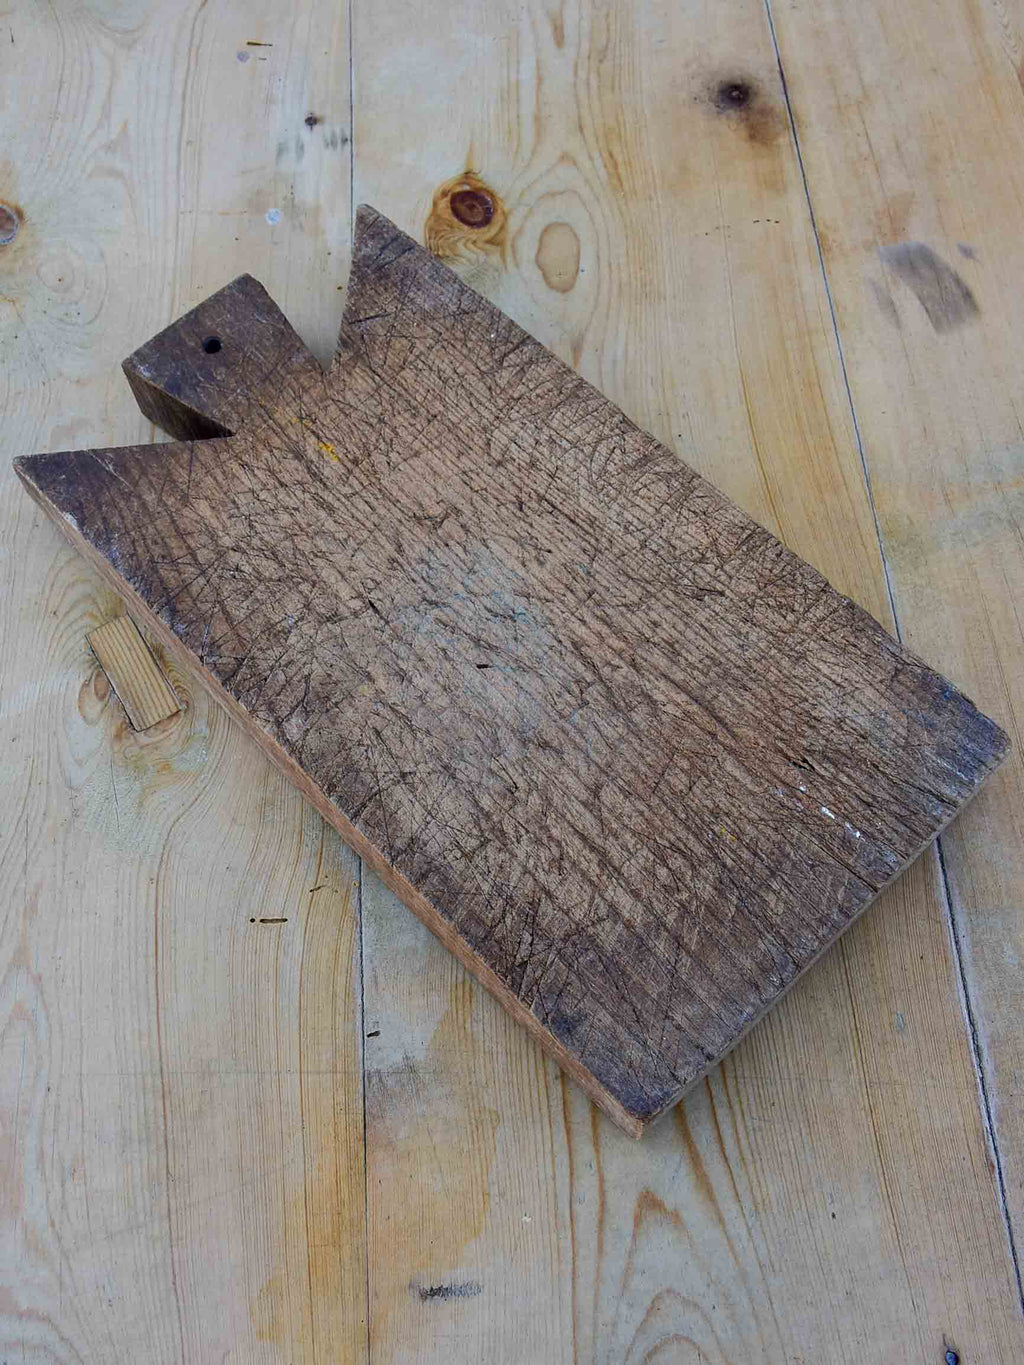 Small rectangular rustic French cutting board